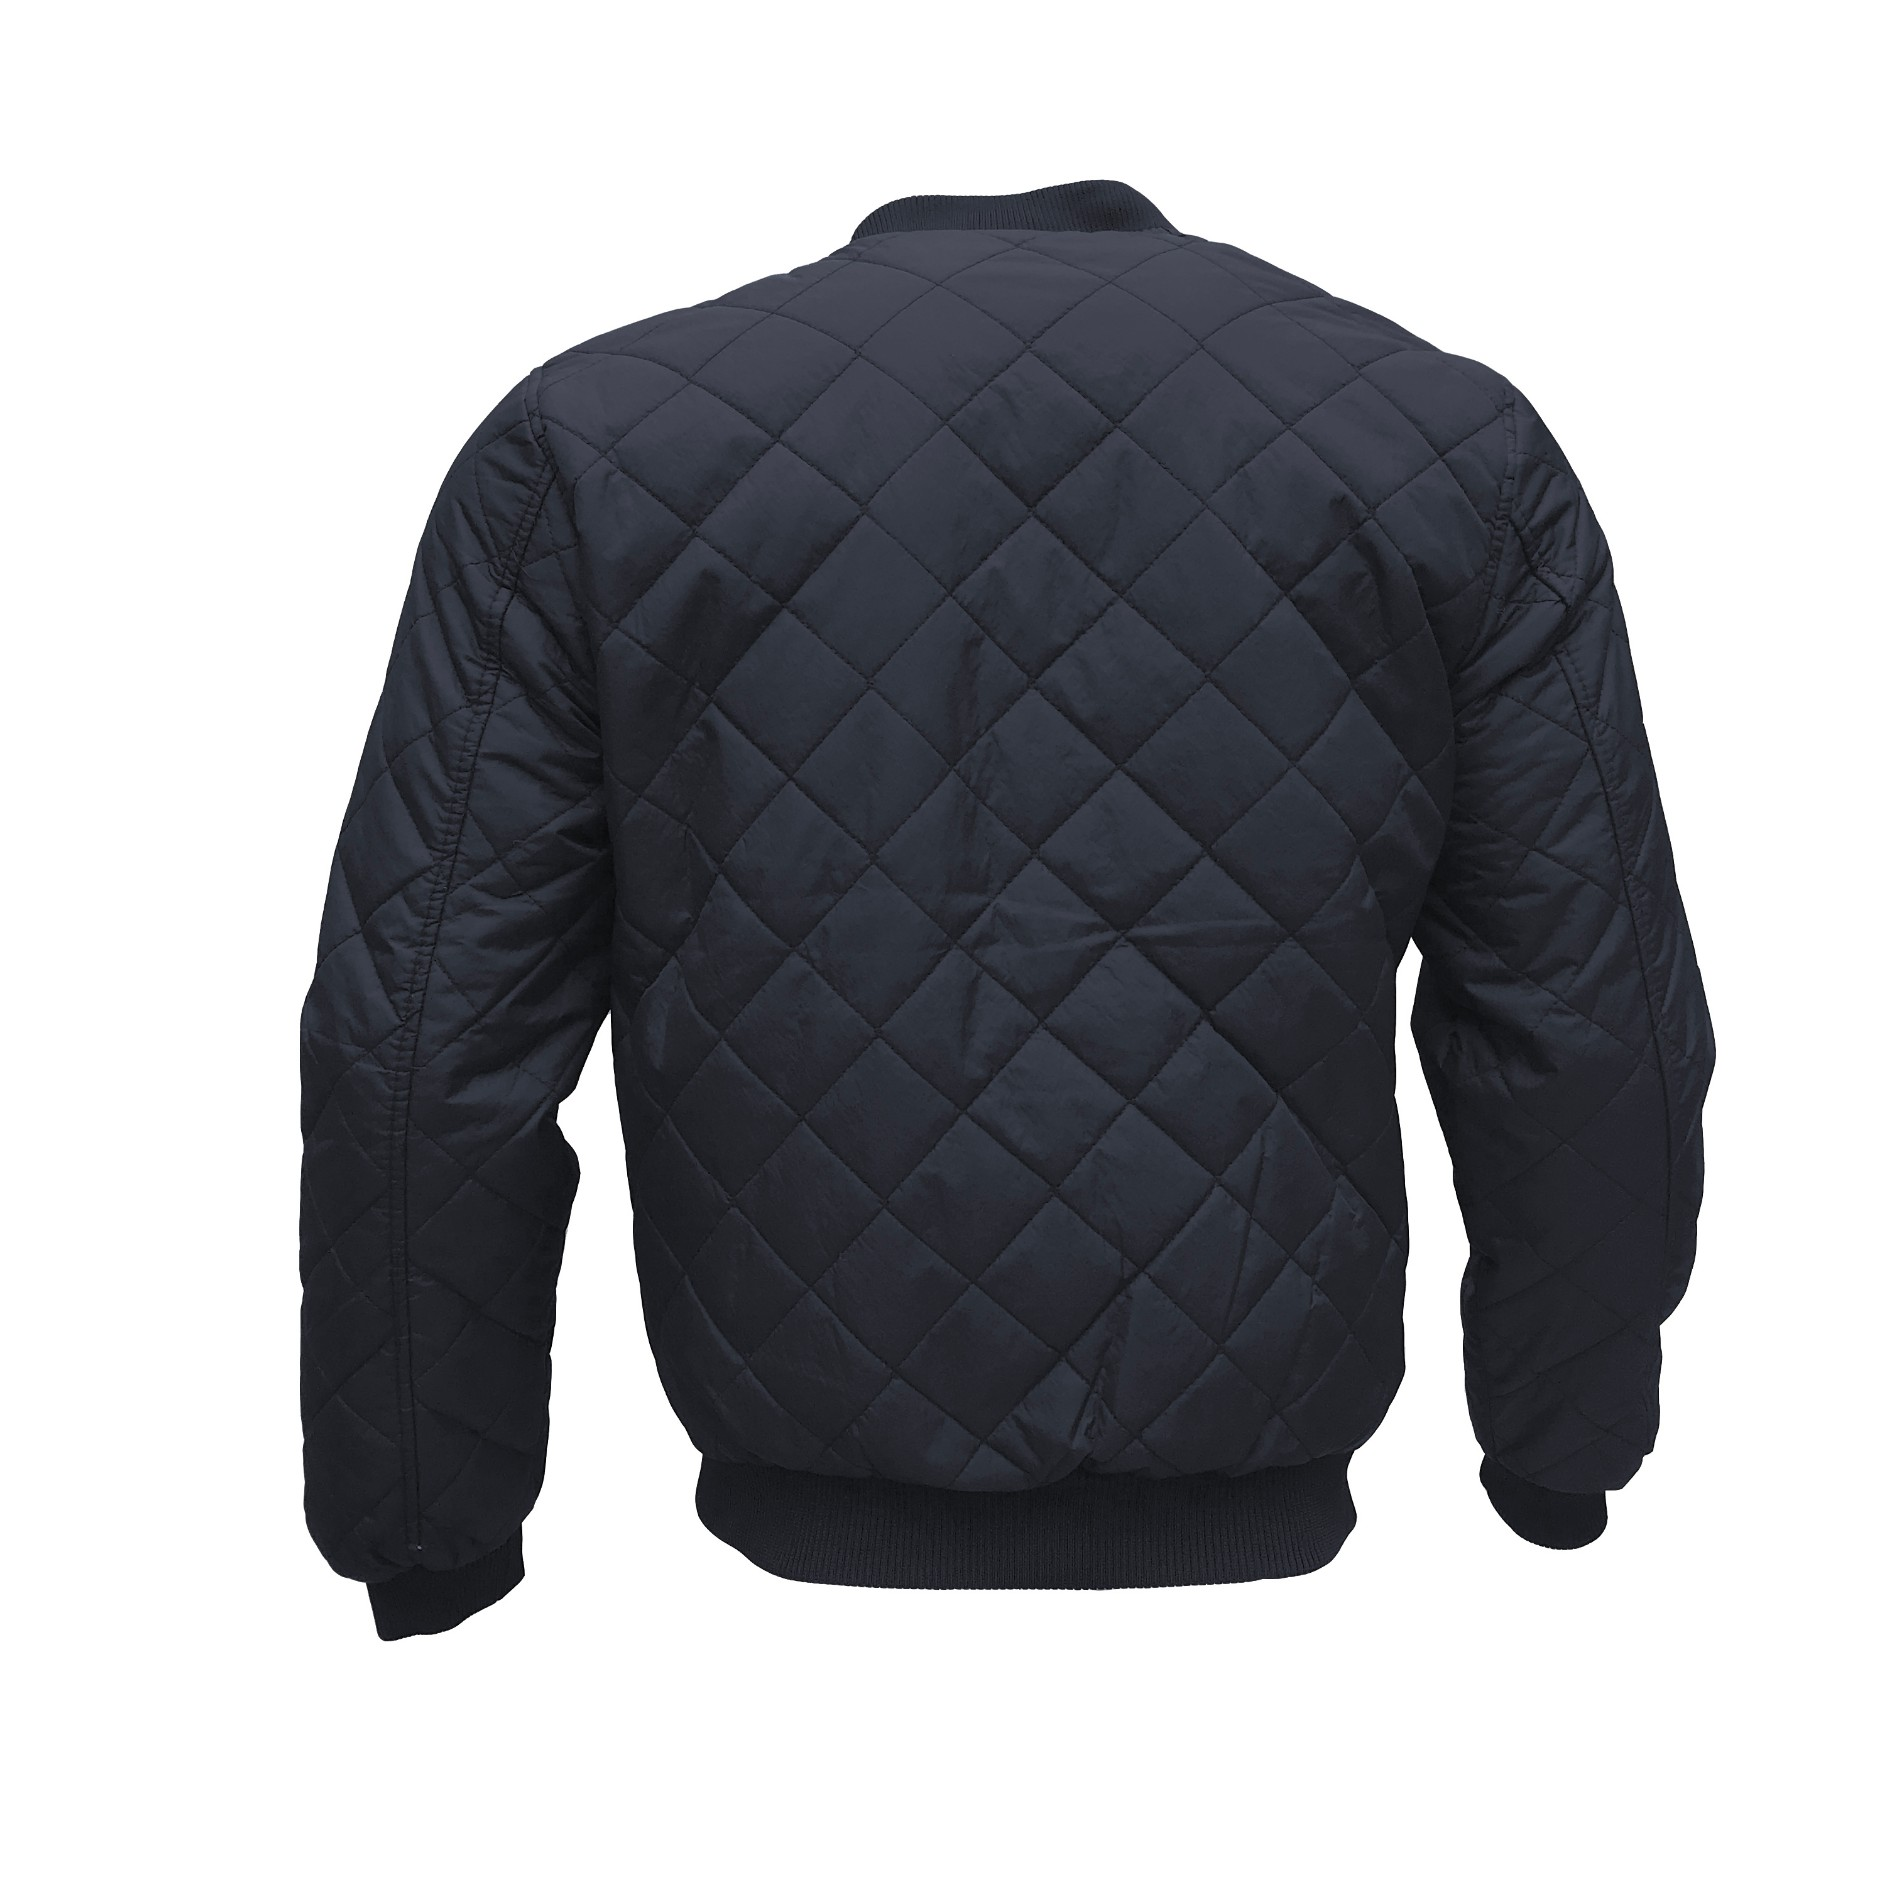 High Quality Padded Stand Collar Jackets Winter Jackets For Men Manufacturers, High Quality Padded Stand Collar Jackets Winter Jackets For Men Factory, Supply High Quality Padded Stand Collar Jackets Winter Jackets For Men